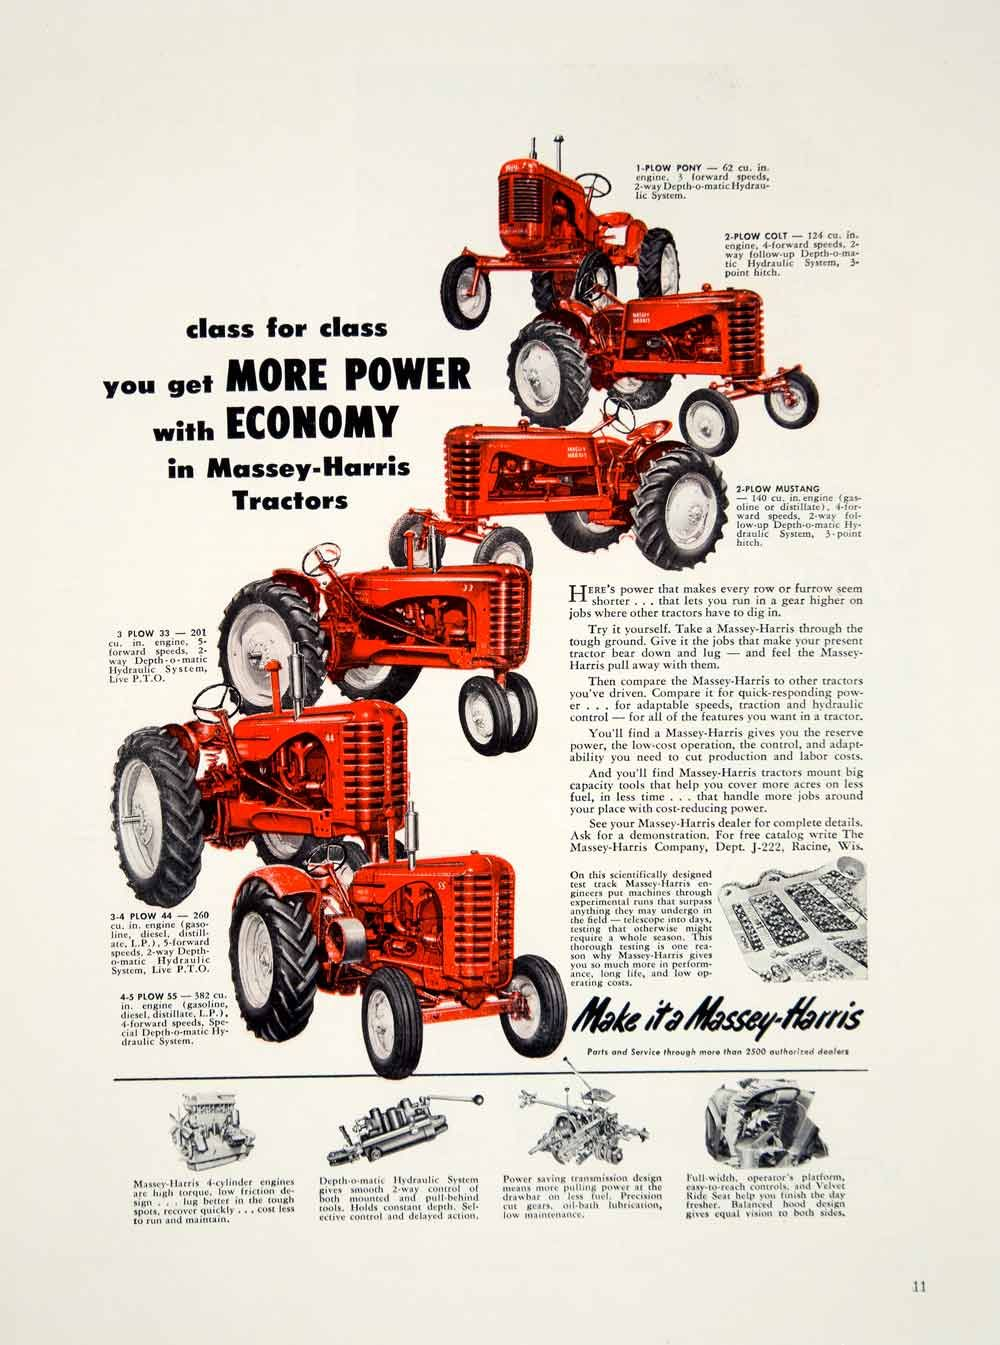 1953 Ad Massey-Harris Tractor 33 44 55 Colt Mustang Pony Models Machinery  Farm